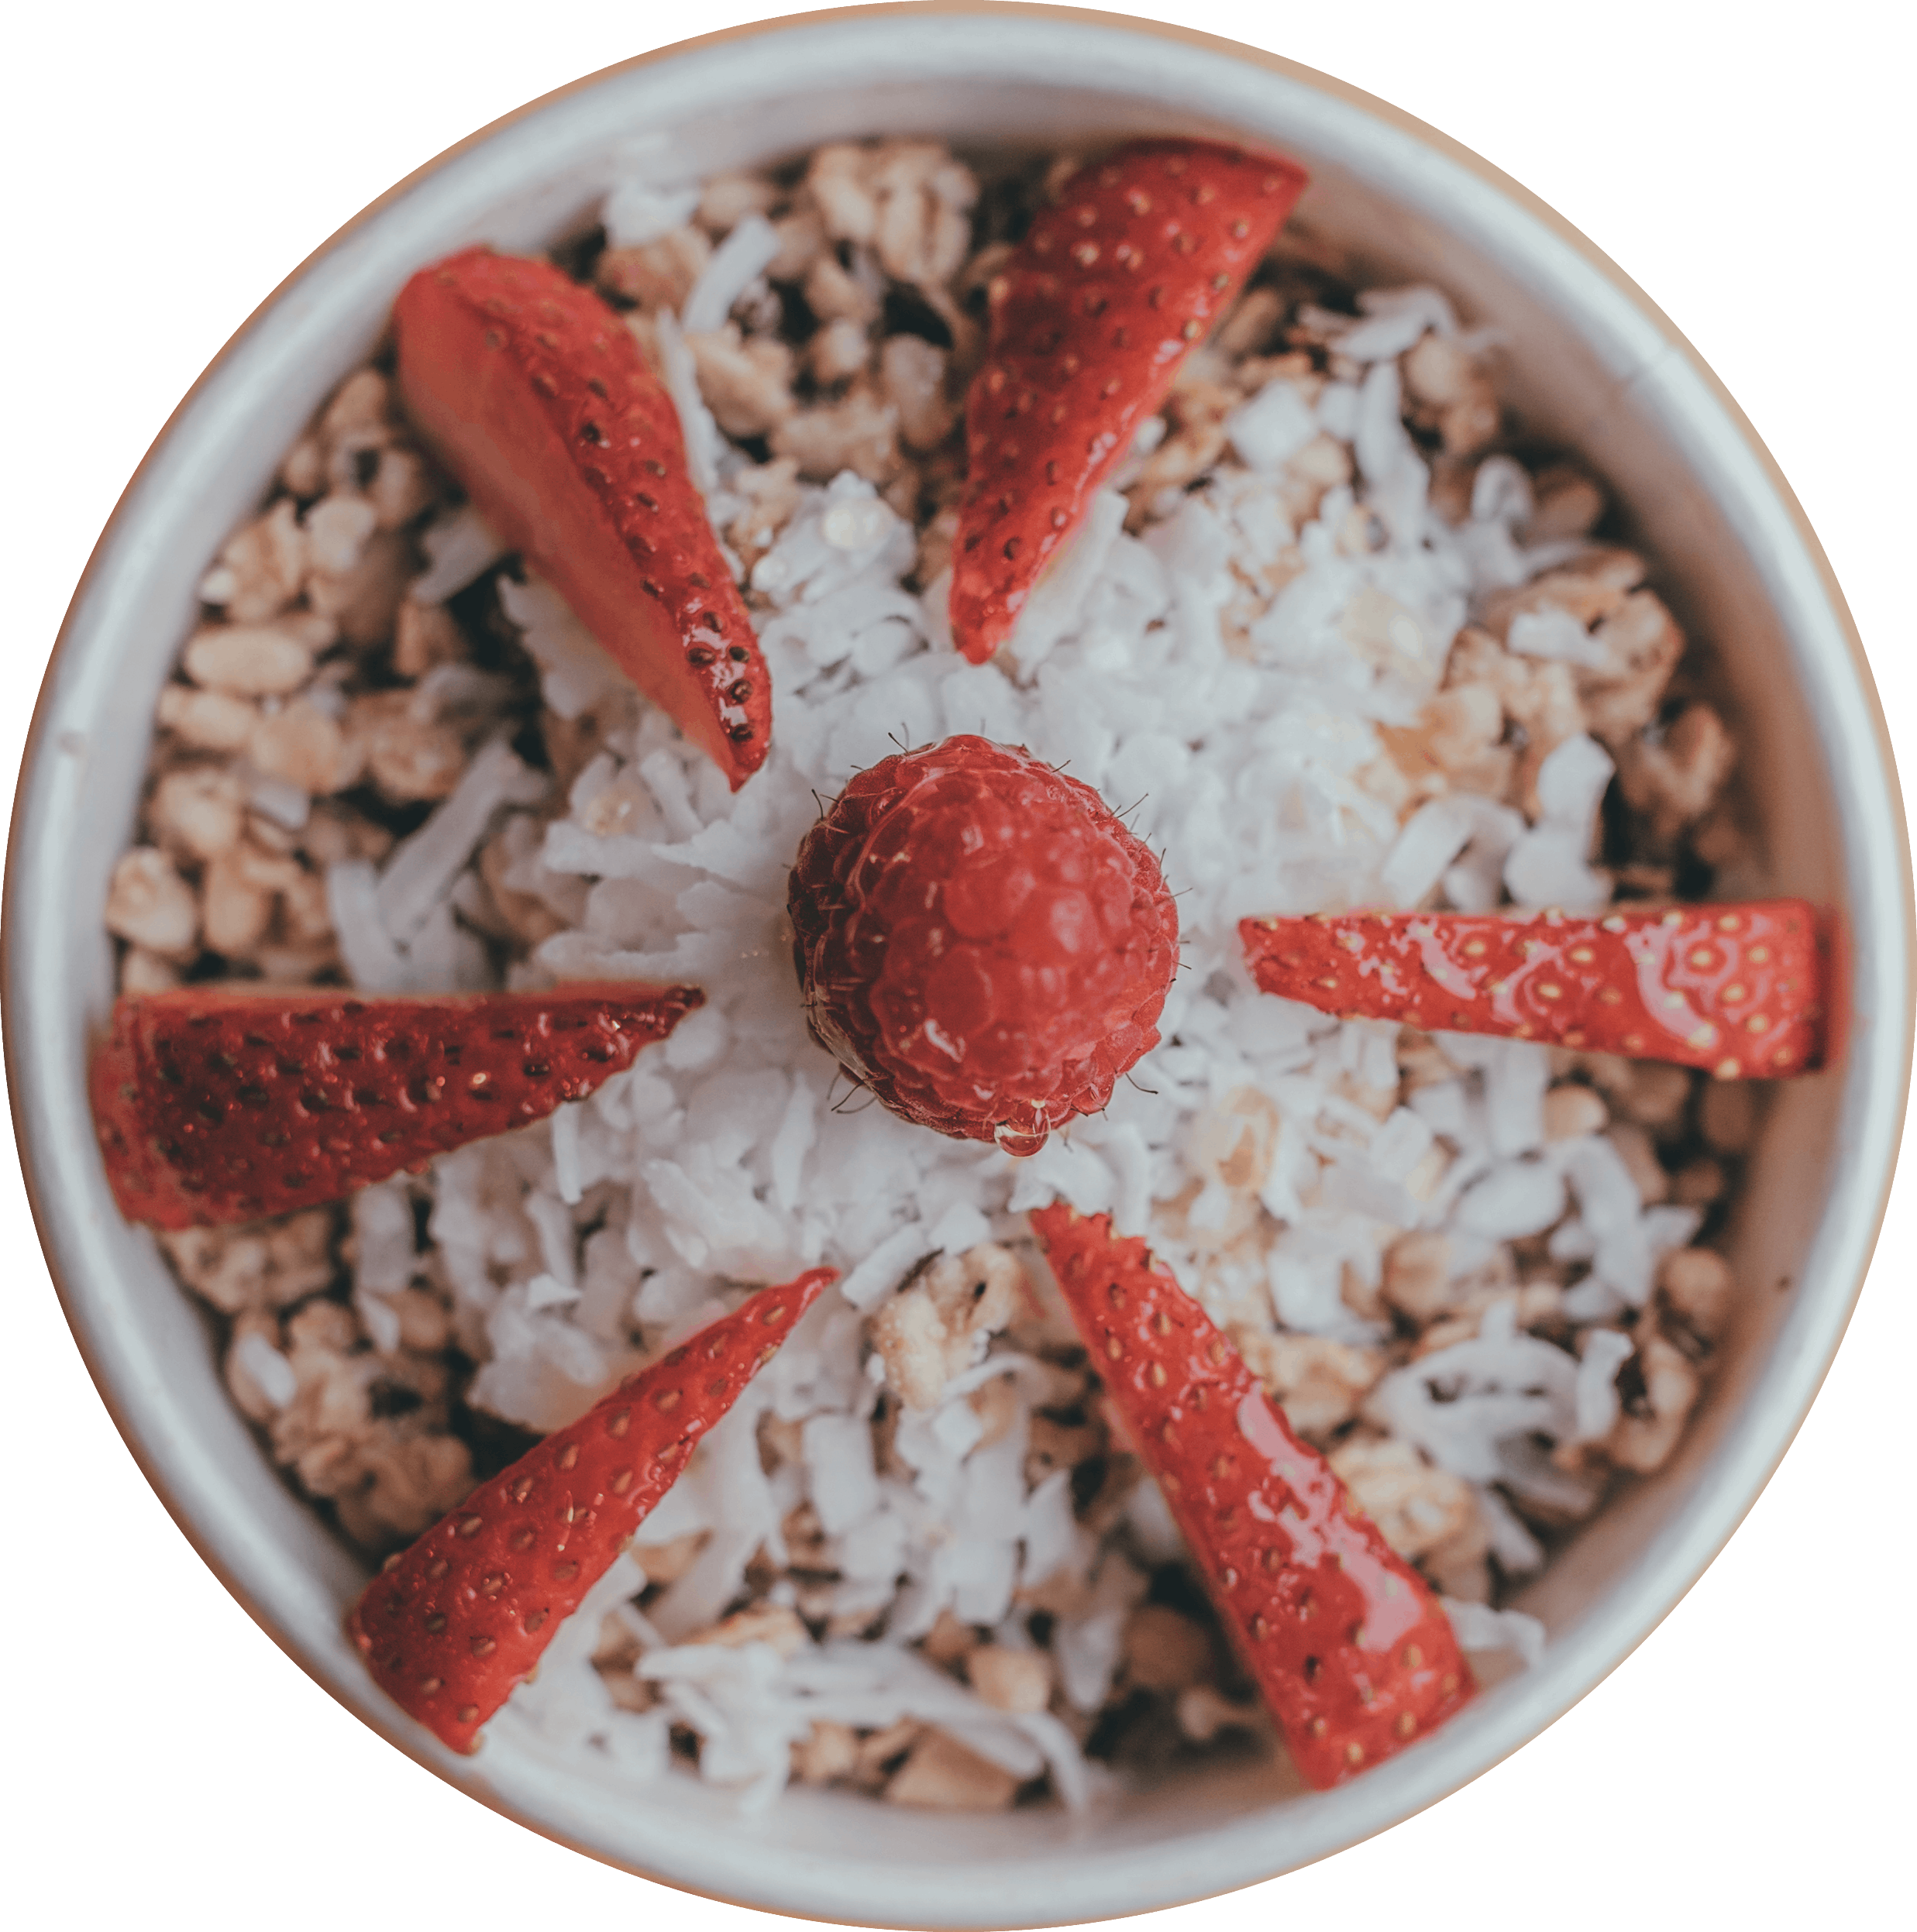 Badger Acai Bowl from Blended (formerly known as Bowl of Heaven) in Madison, WI